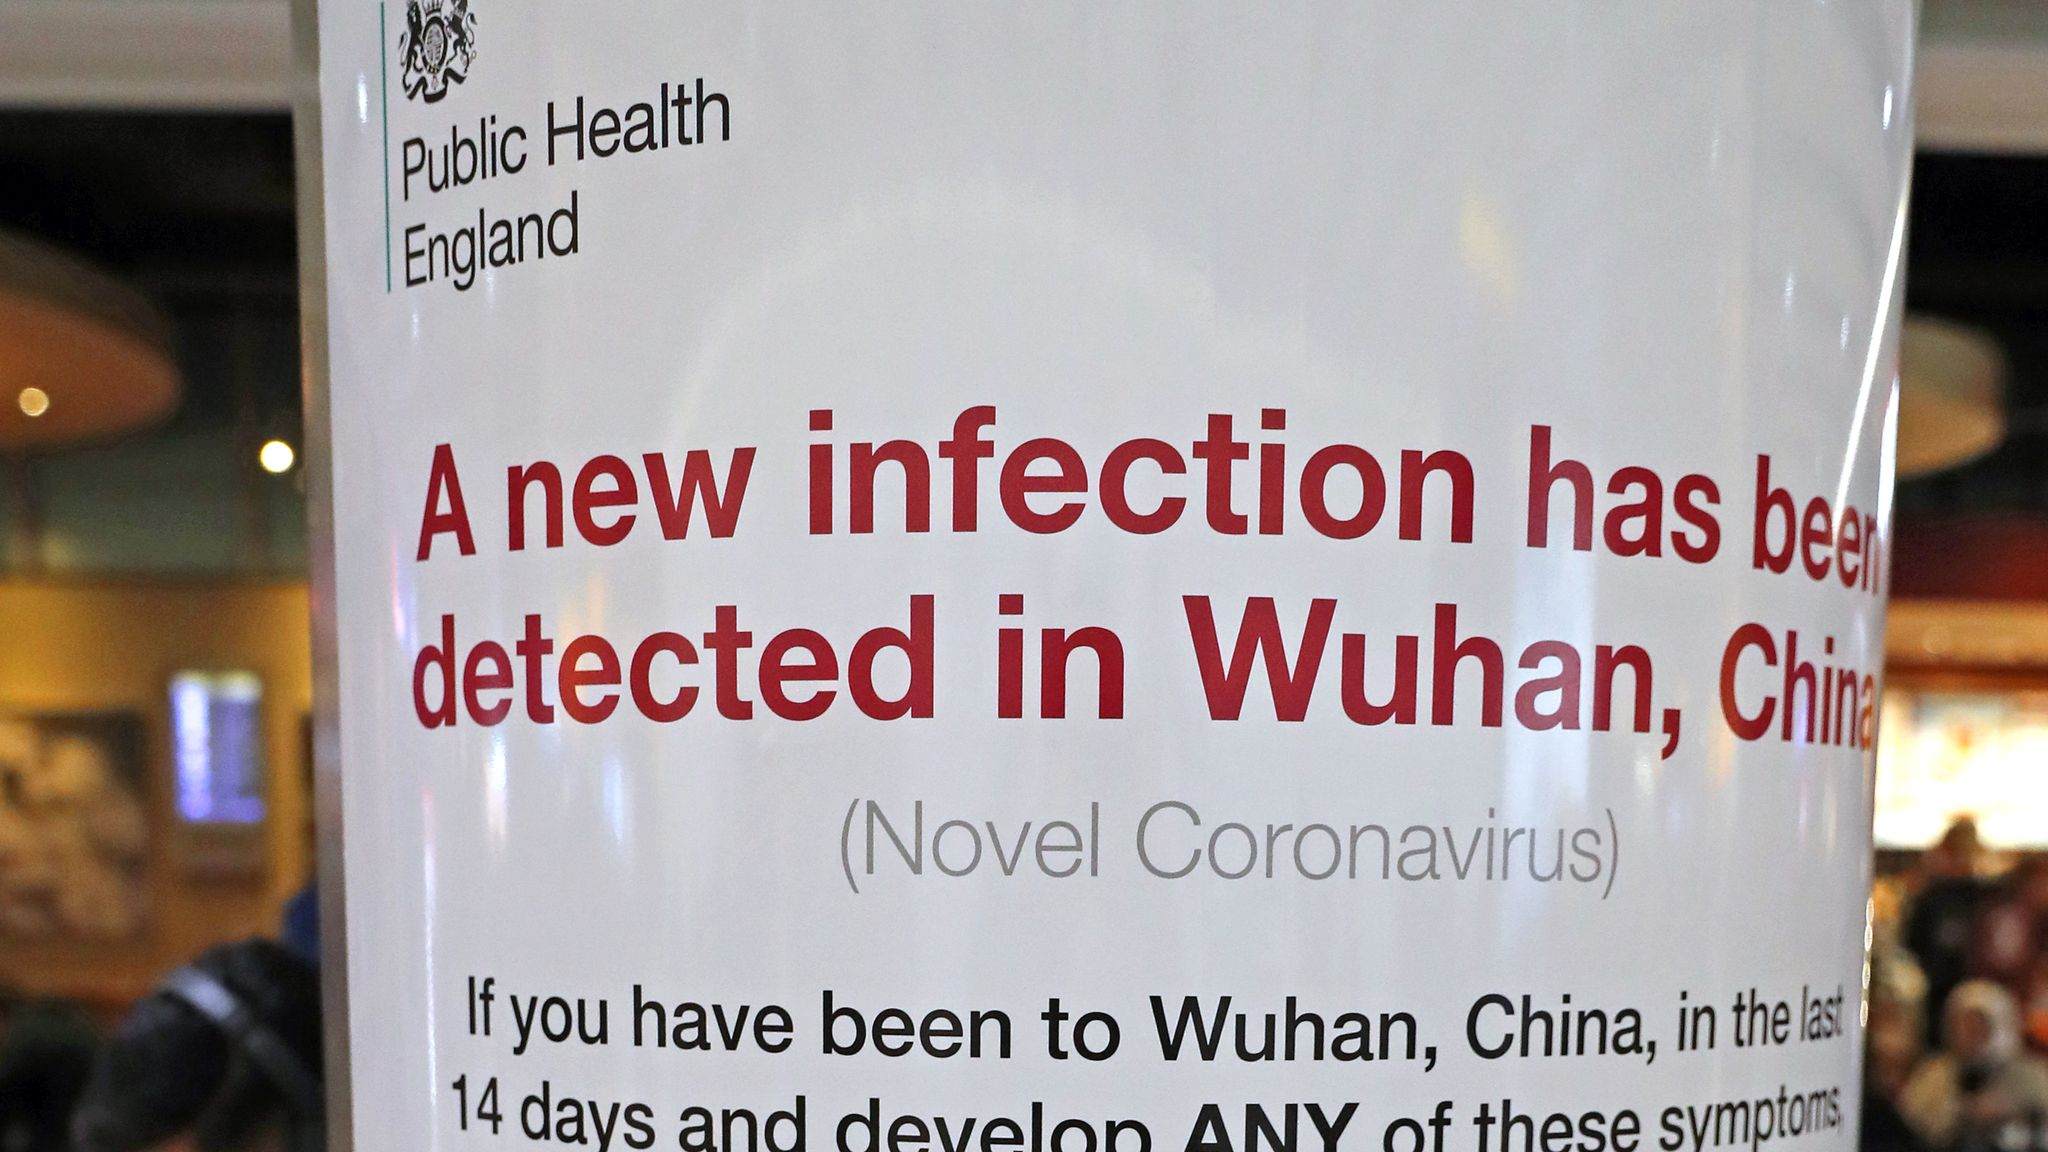 Coronavirus: UK 'looking at all options' to help Britons in Wuhan